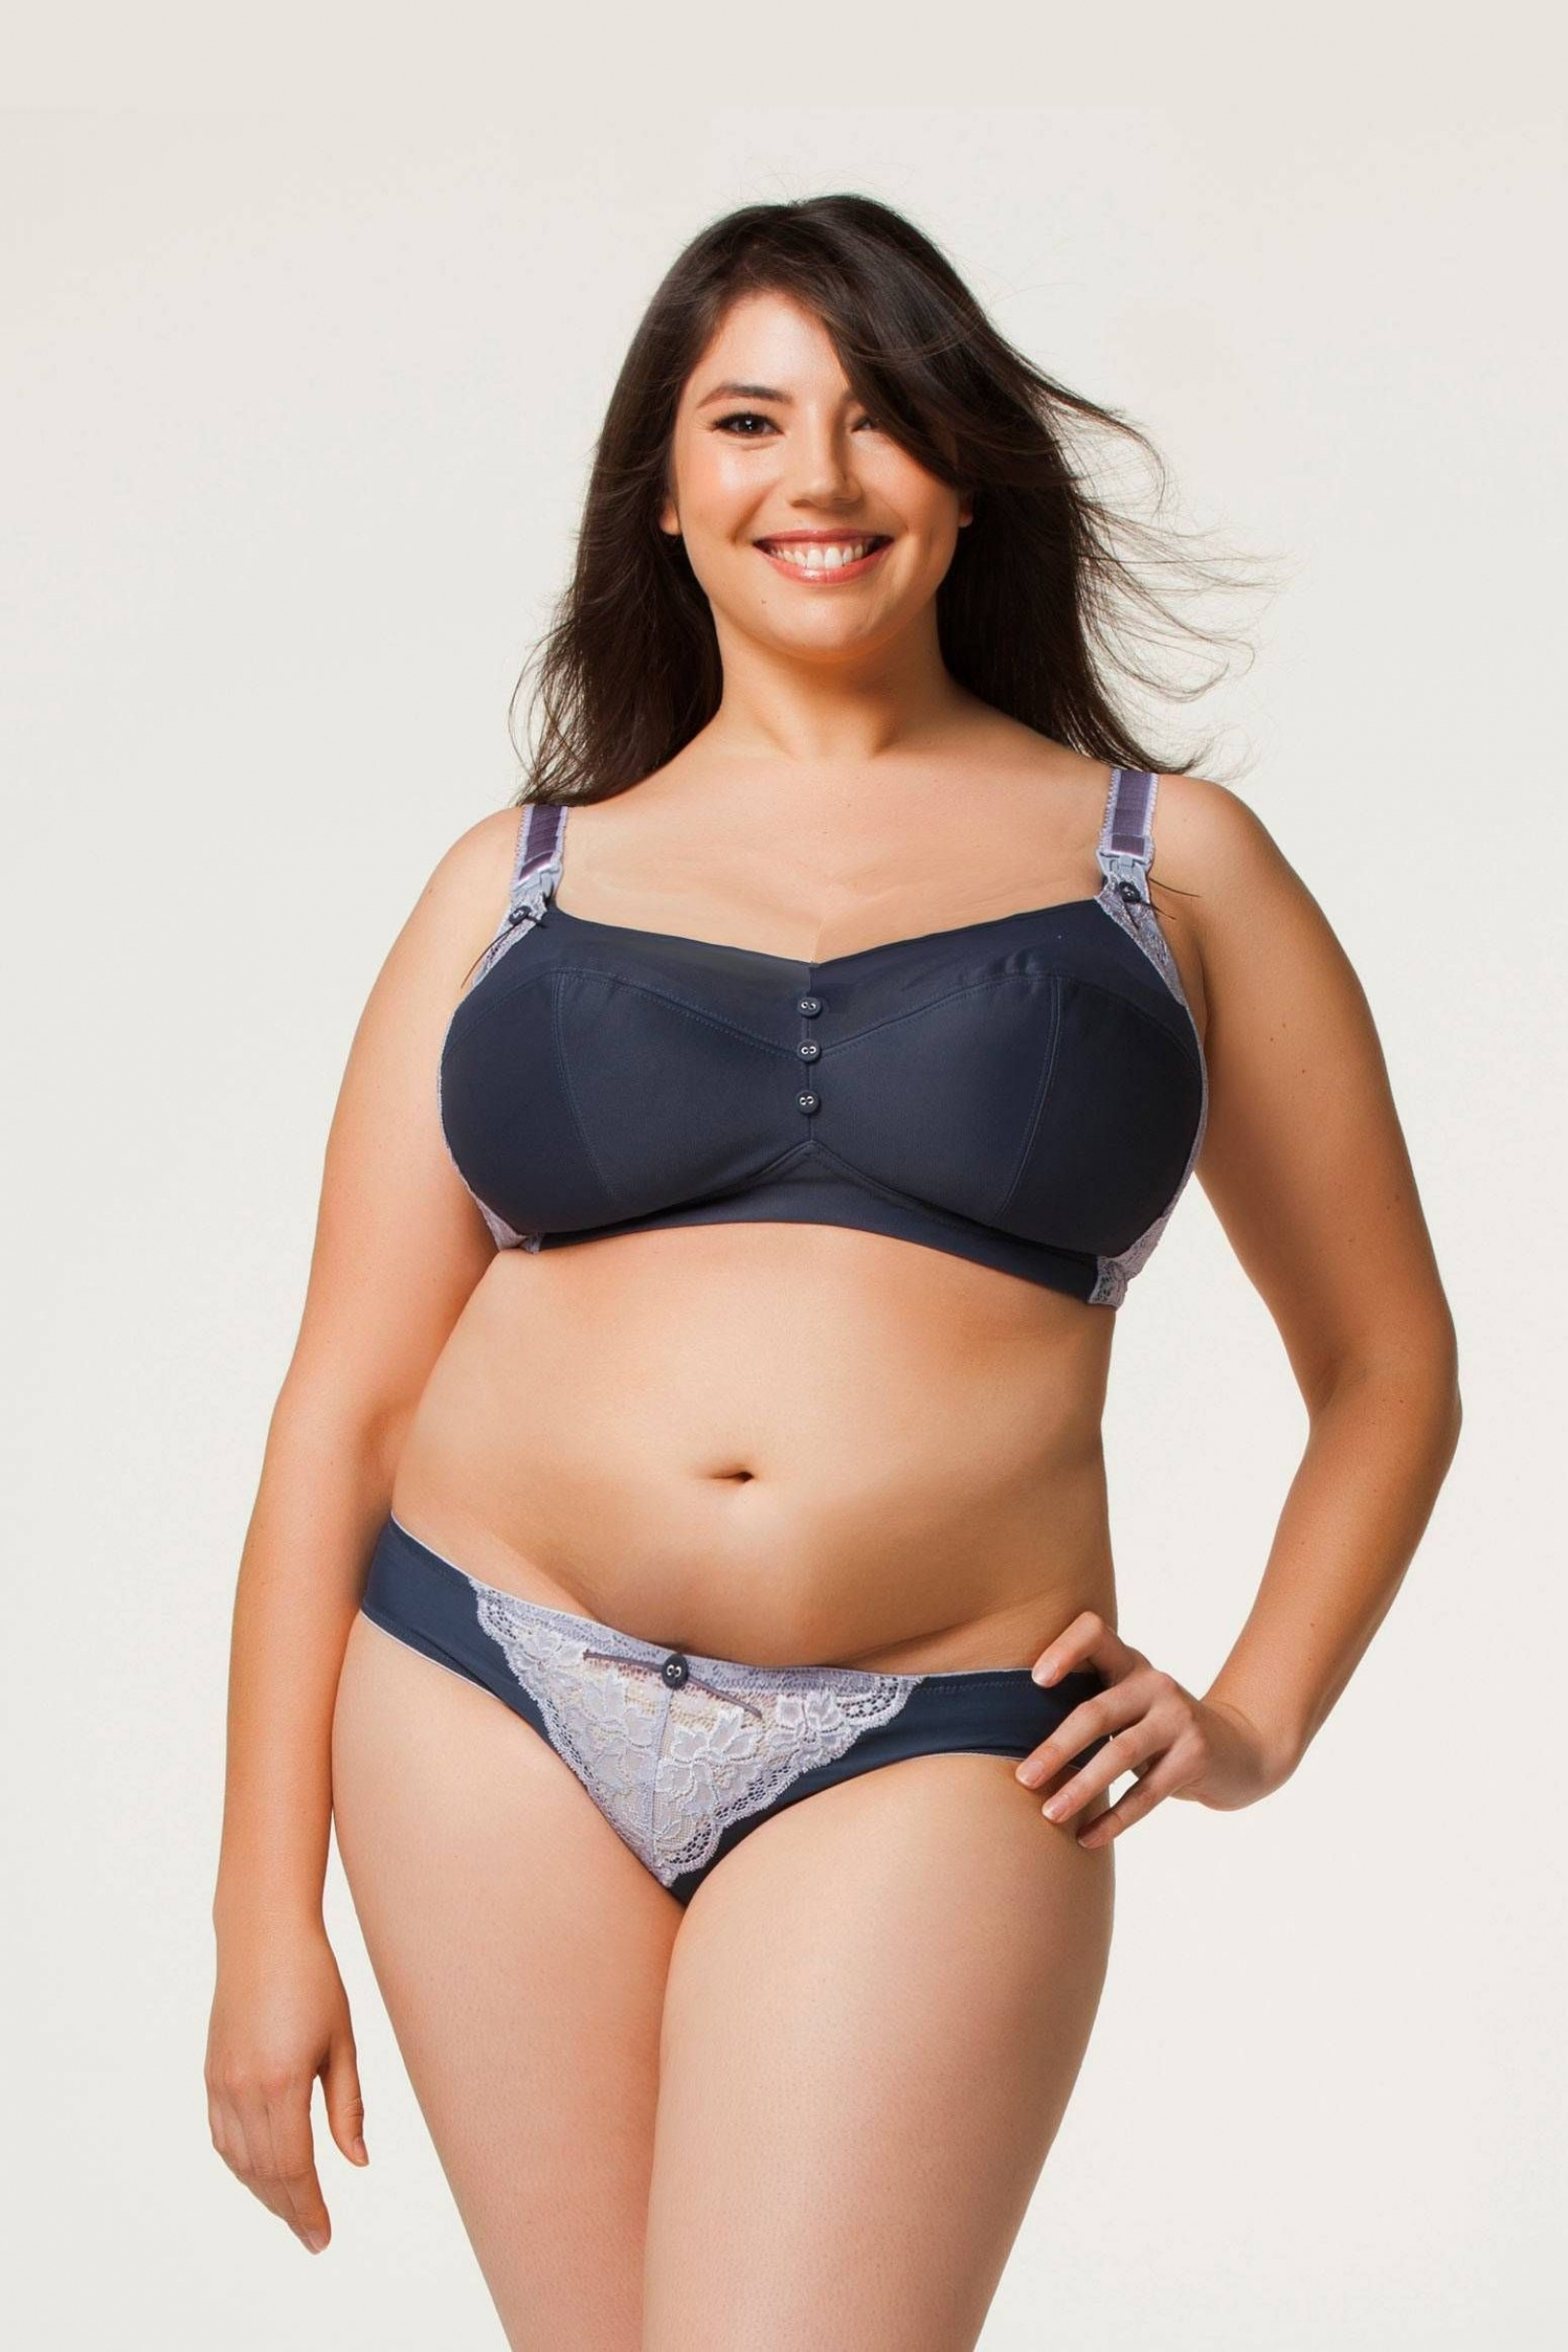 best plus size nursing bras - Sizing